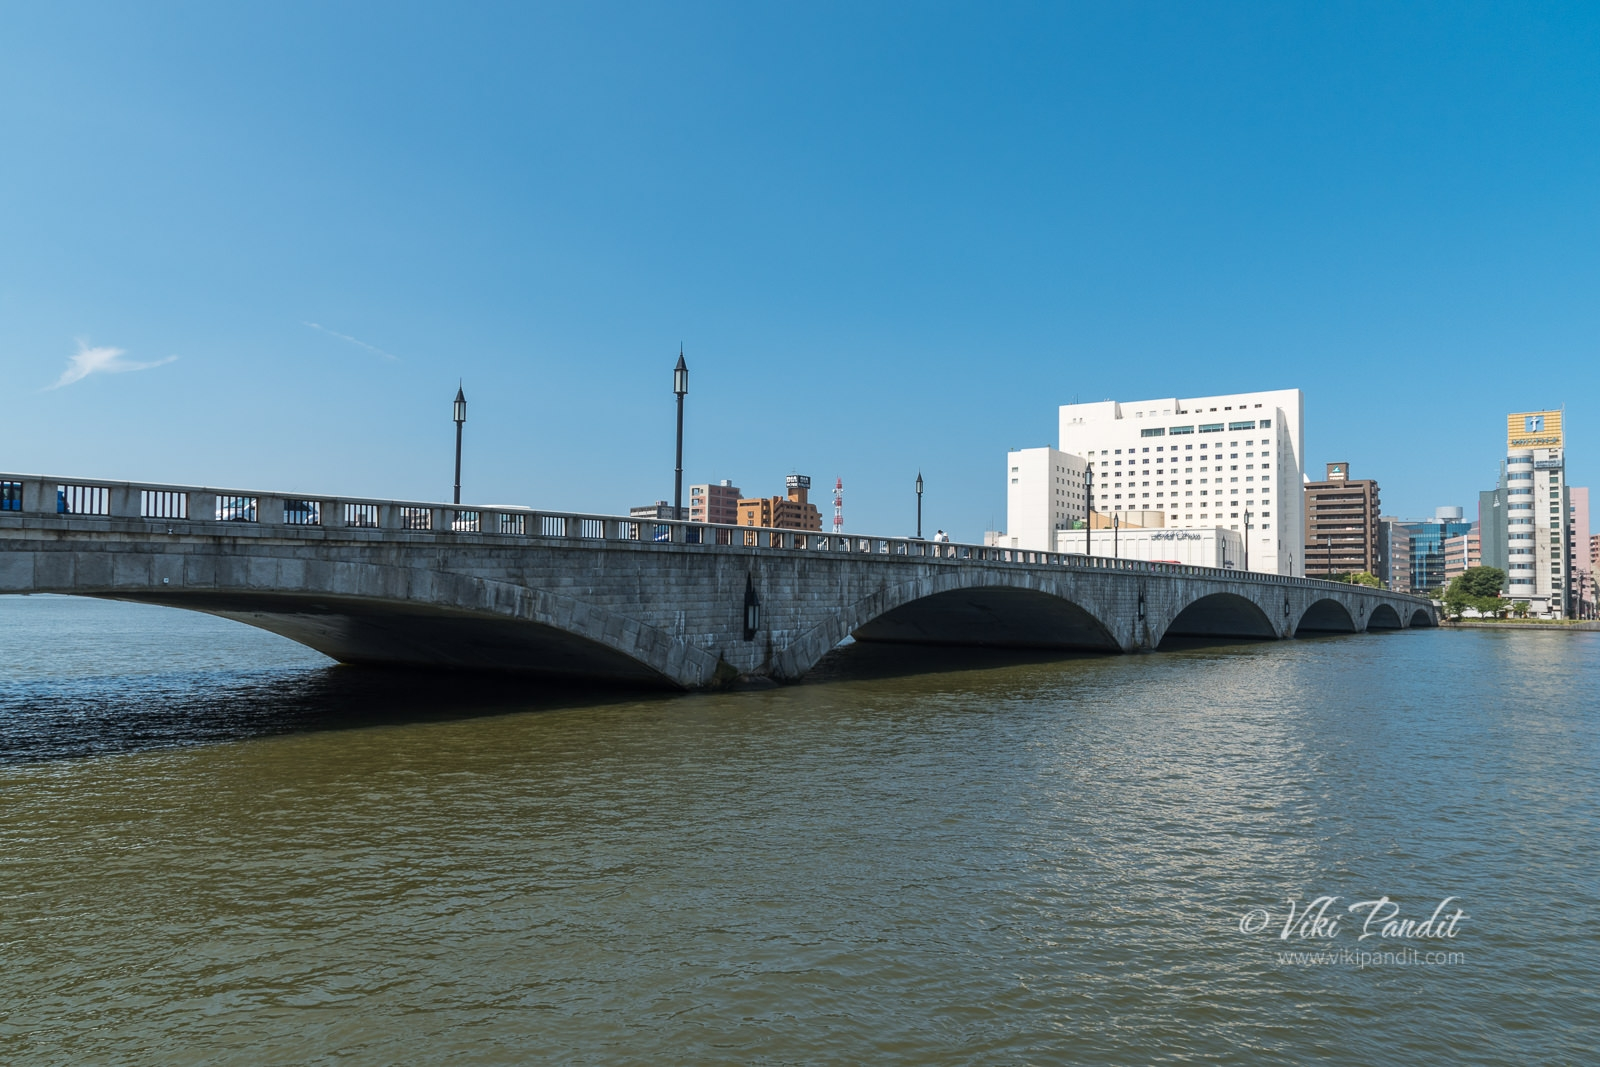 Bandai Bridge